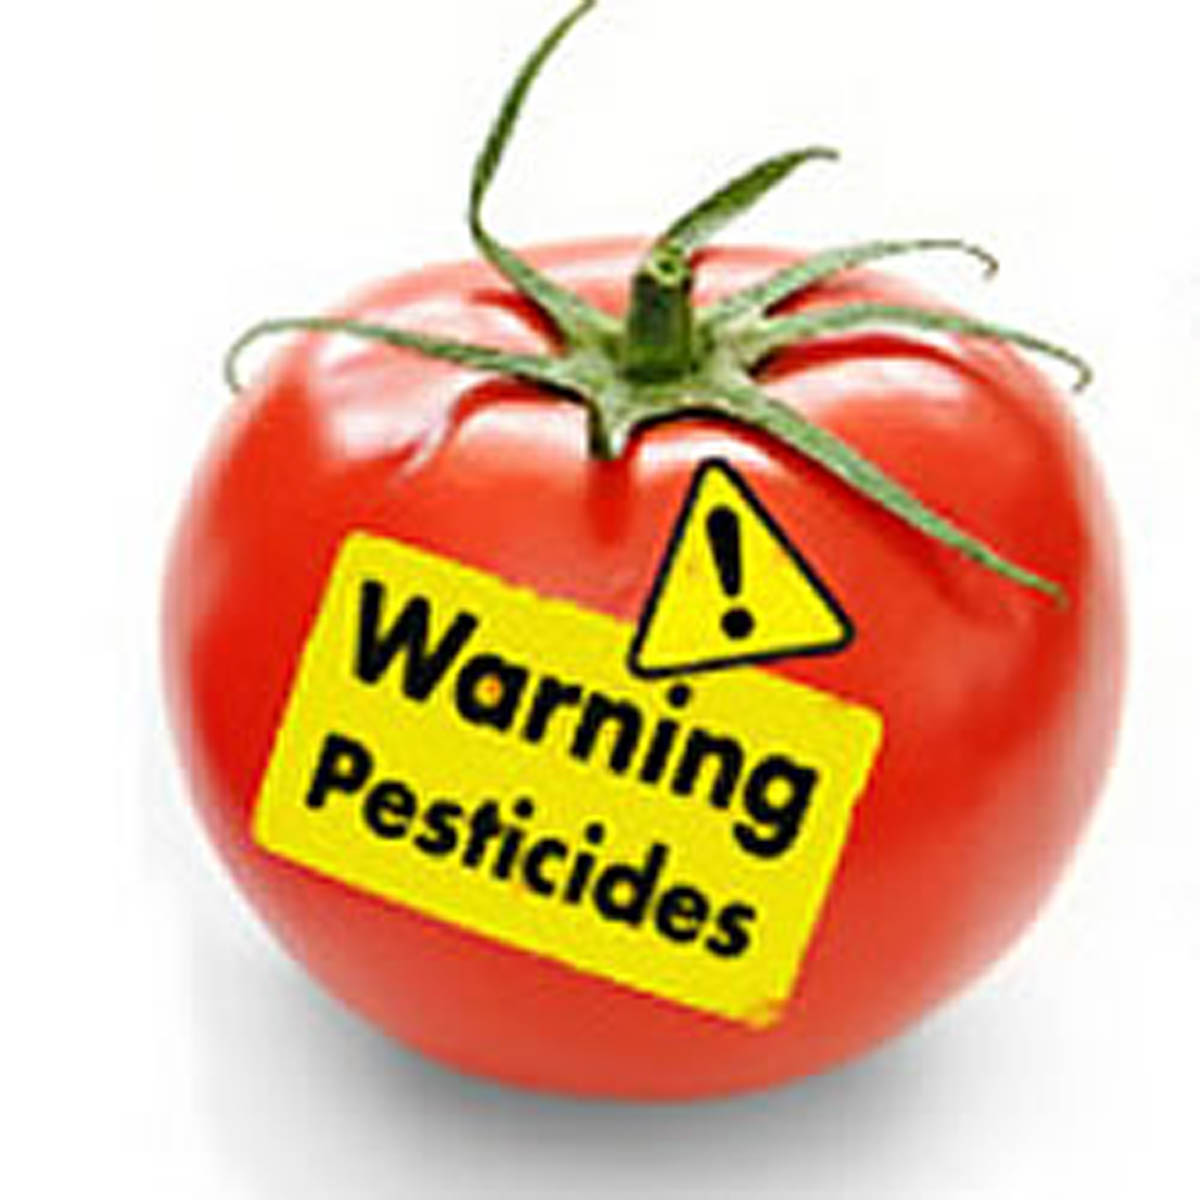 What The Mayans Knew About Pesticides